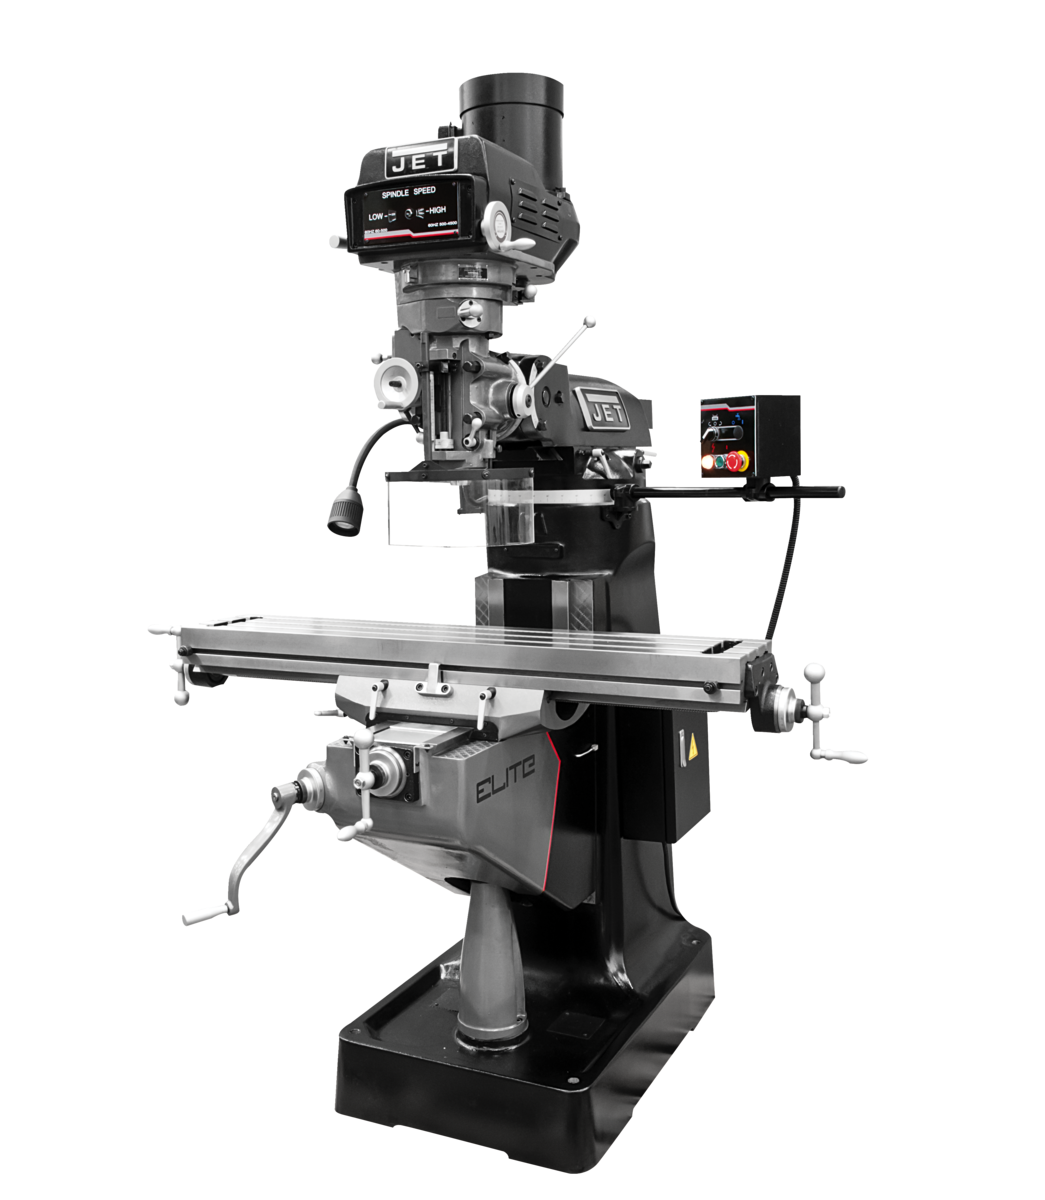 ETM-949 Mill with 3-Axis ACU-RITE 203 (Quill) DRO and X, Y-Axis JET Powerfeeds